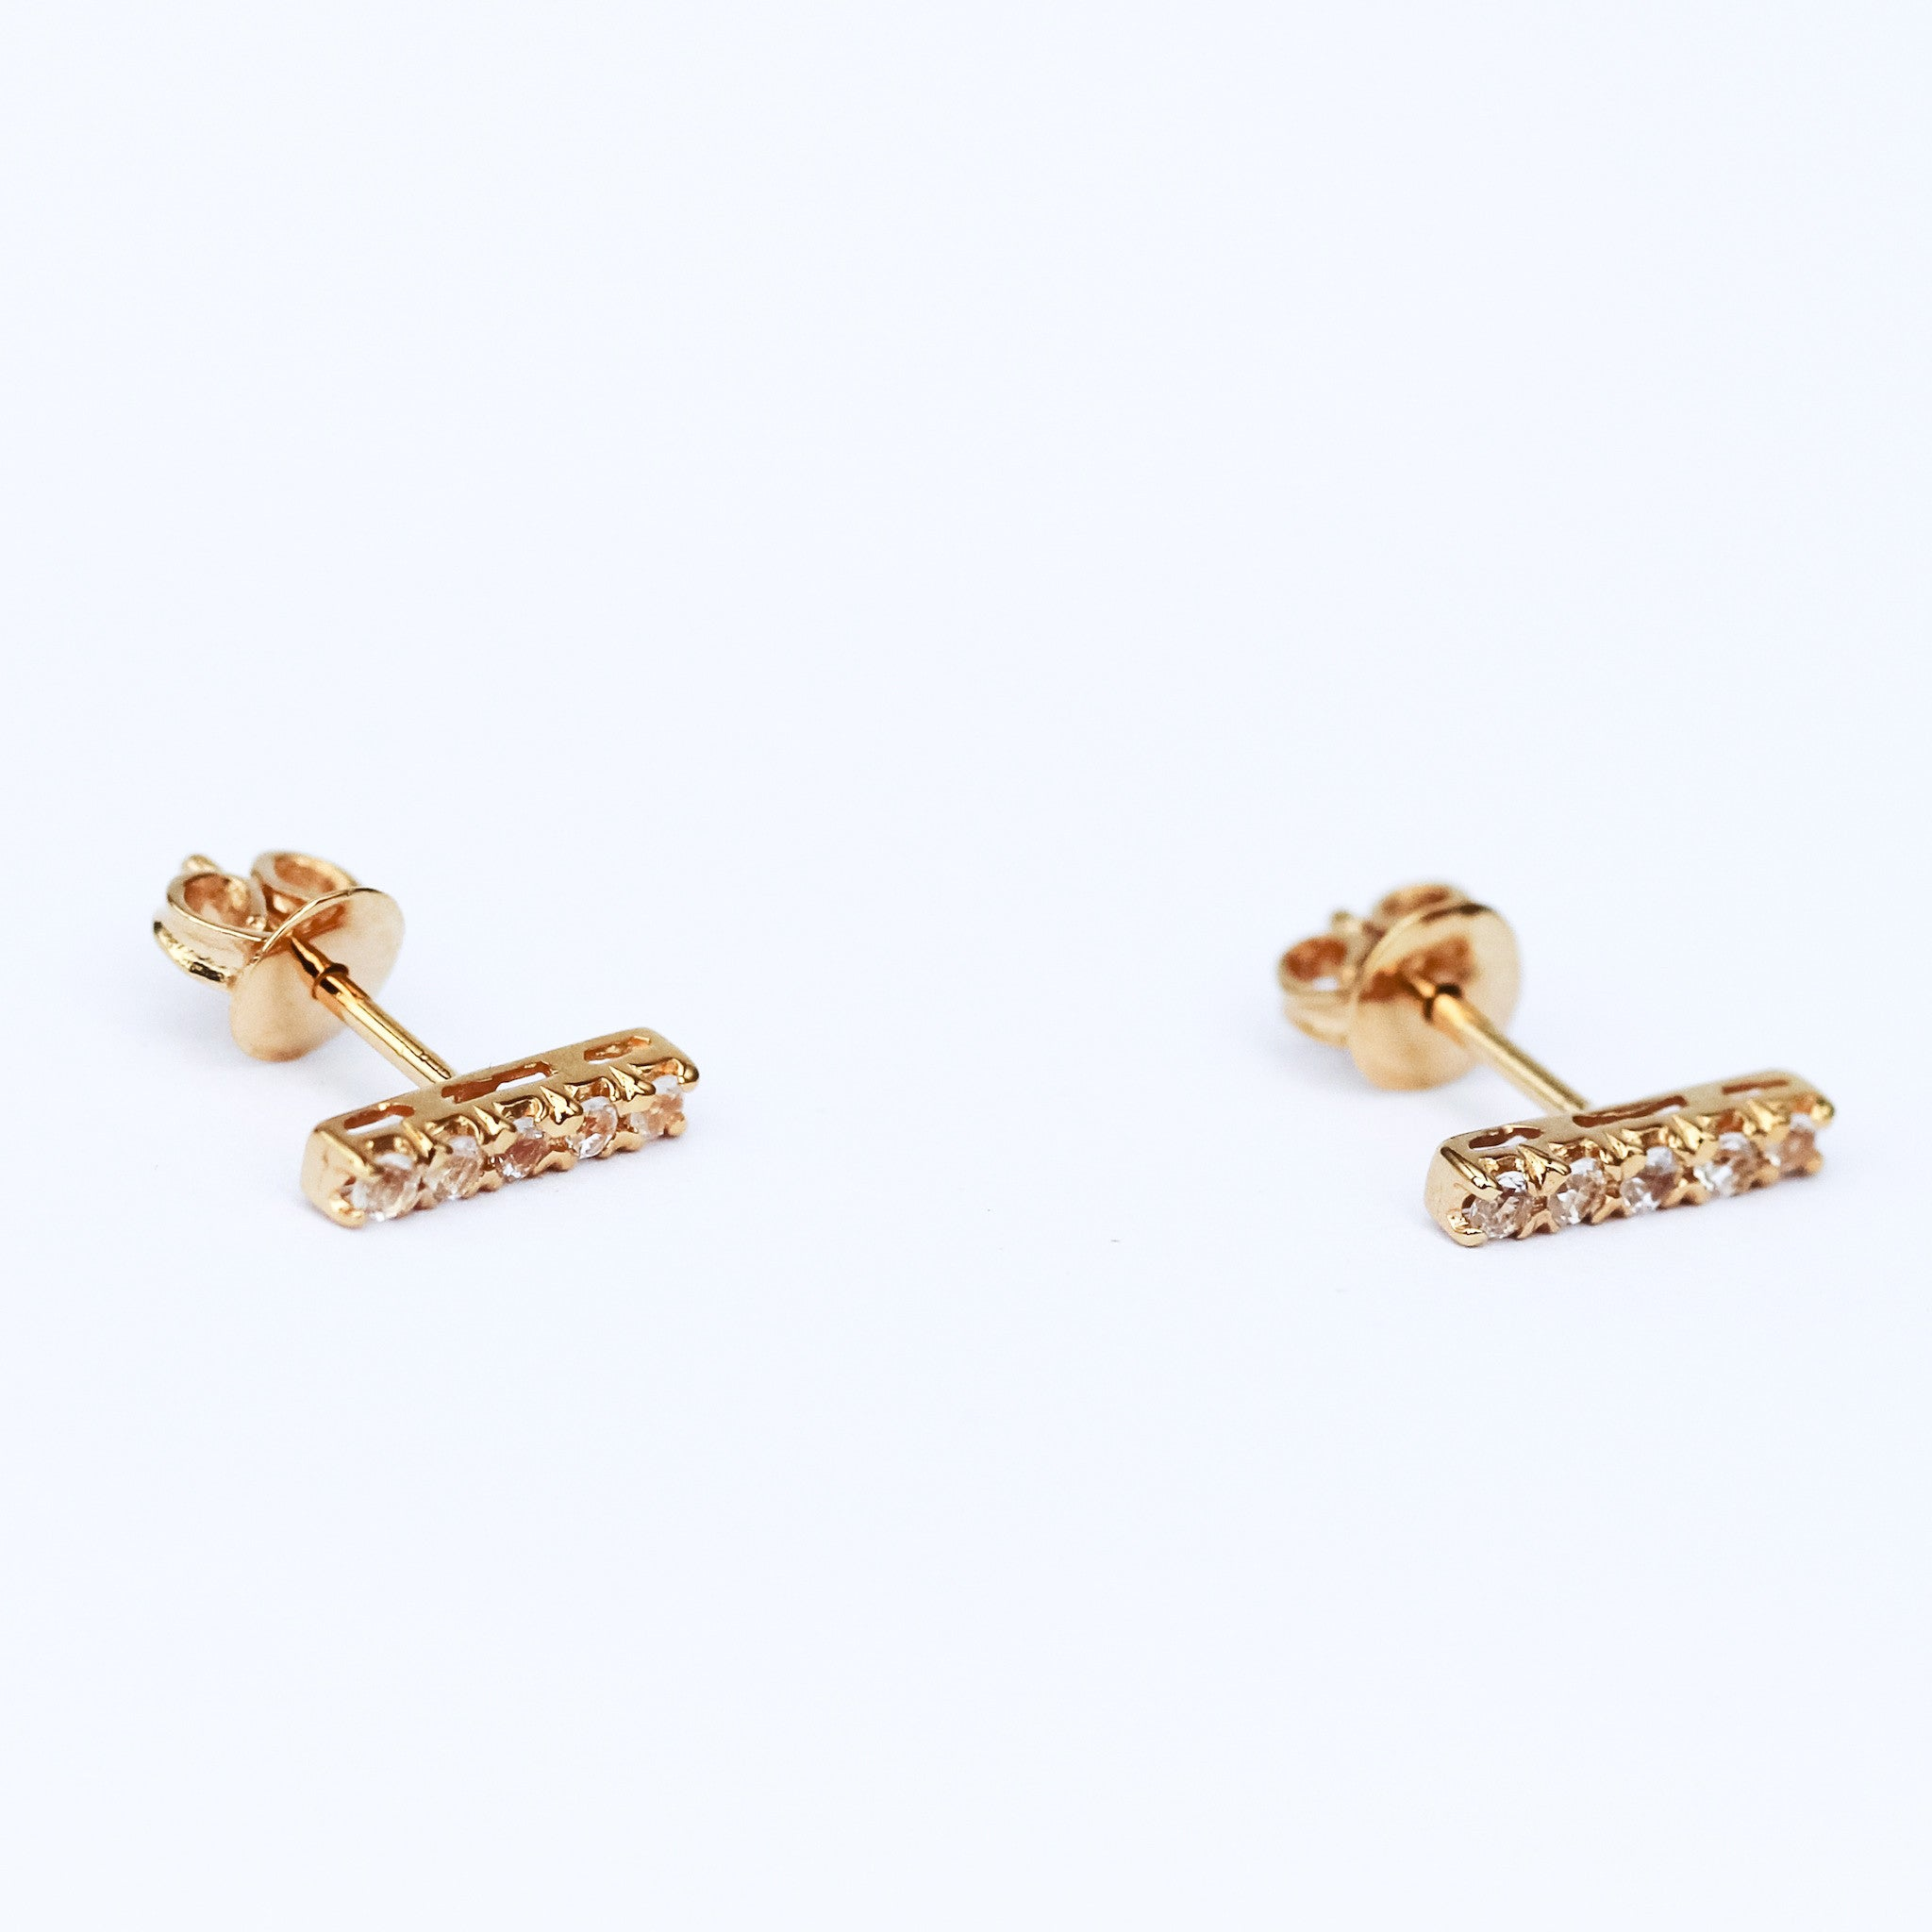 Pave Bar Stud Earring - Zircon Rose Gold